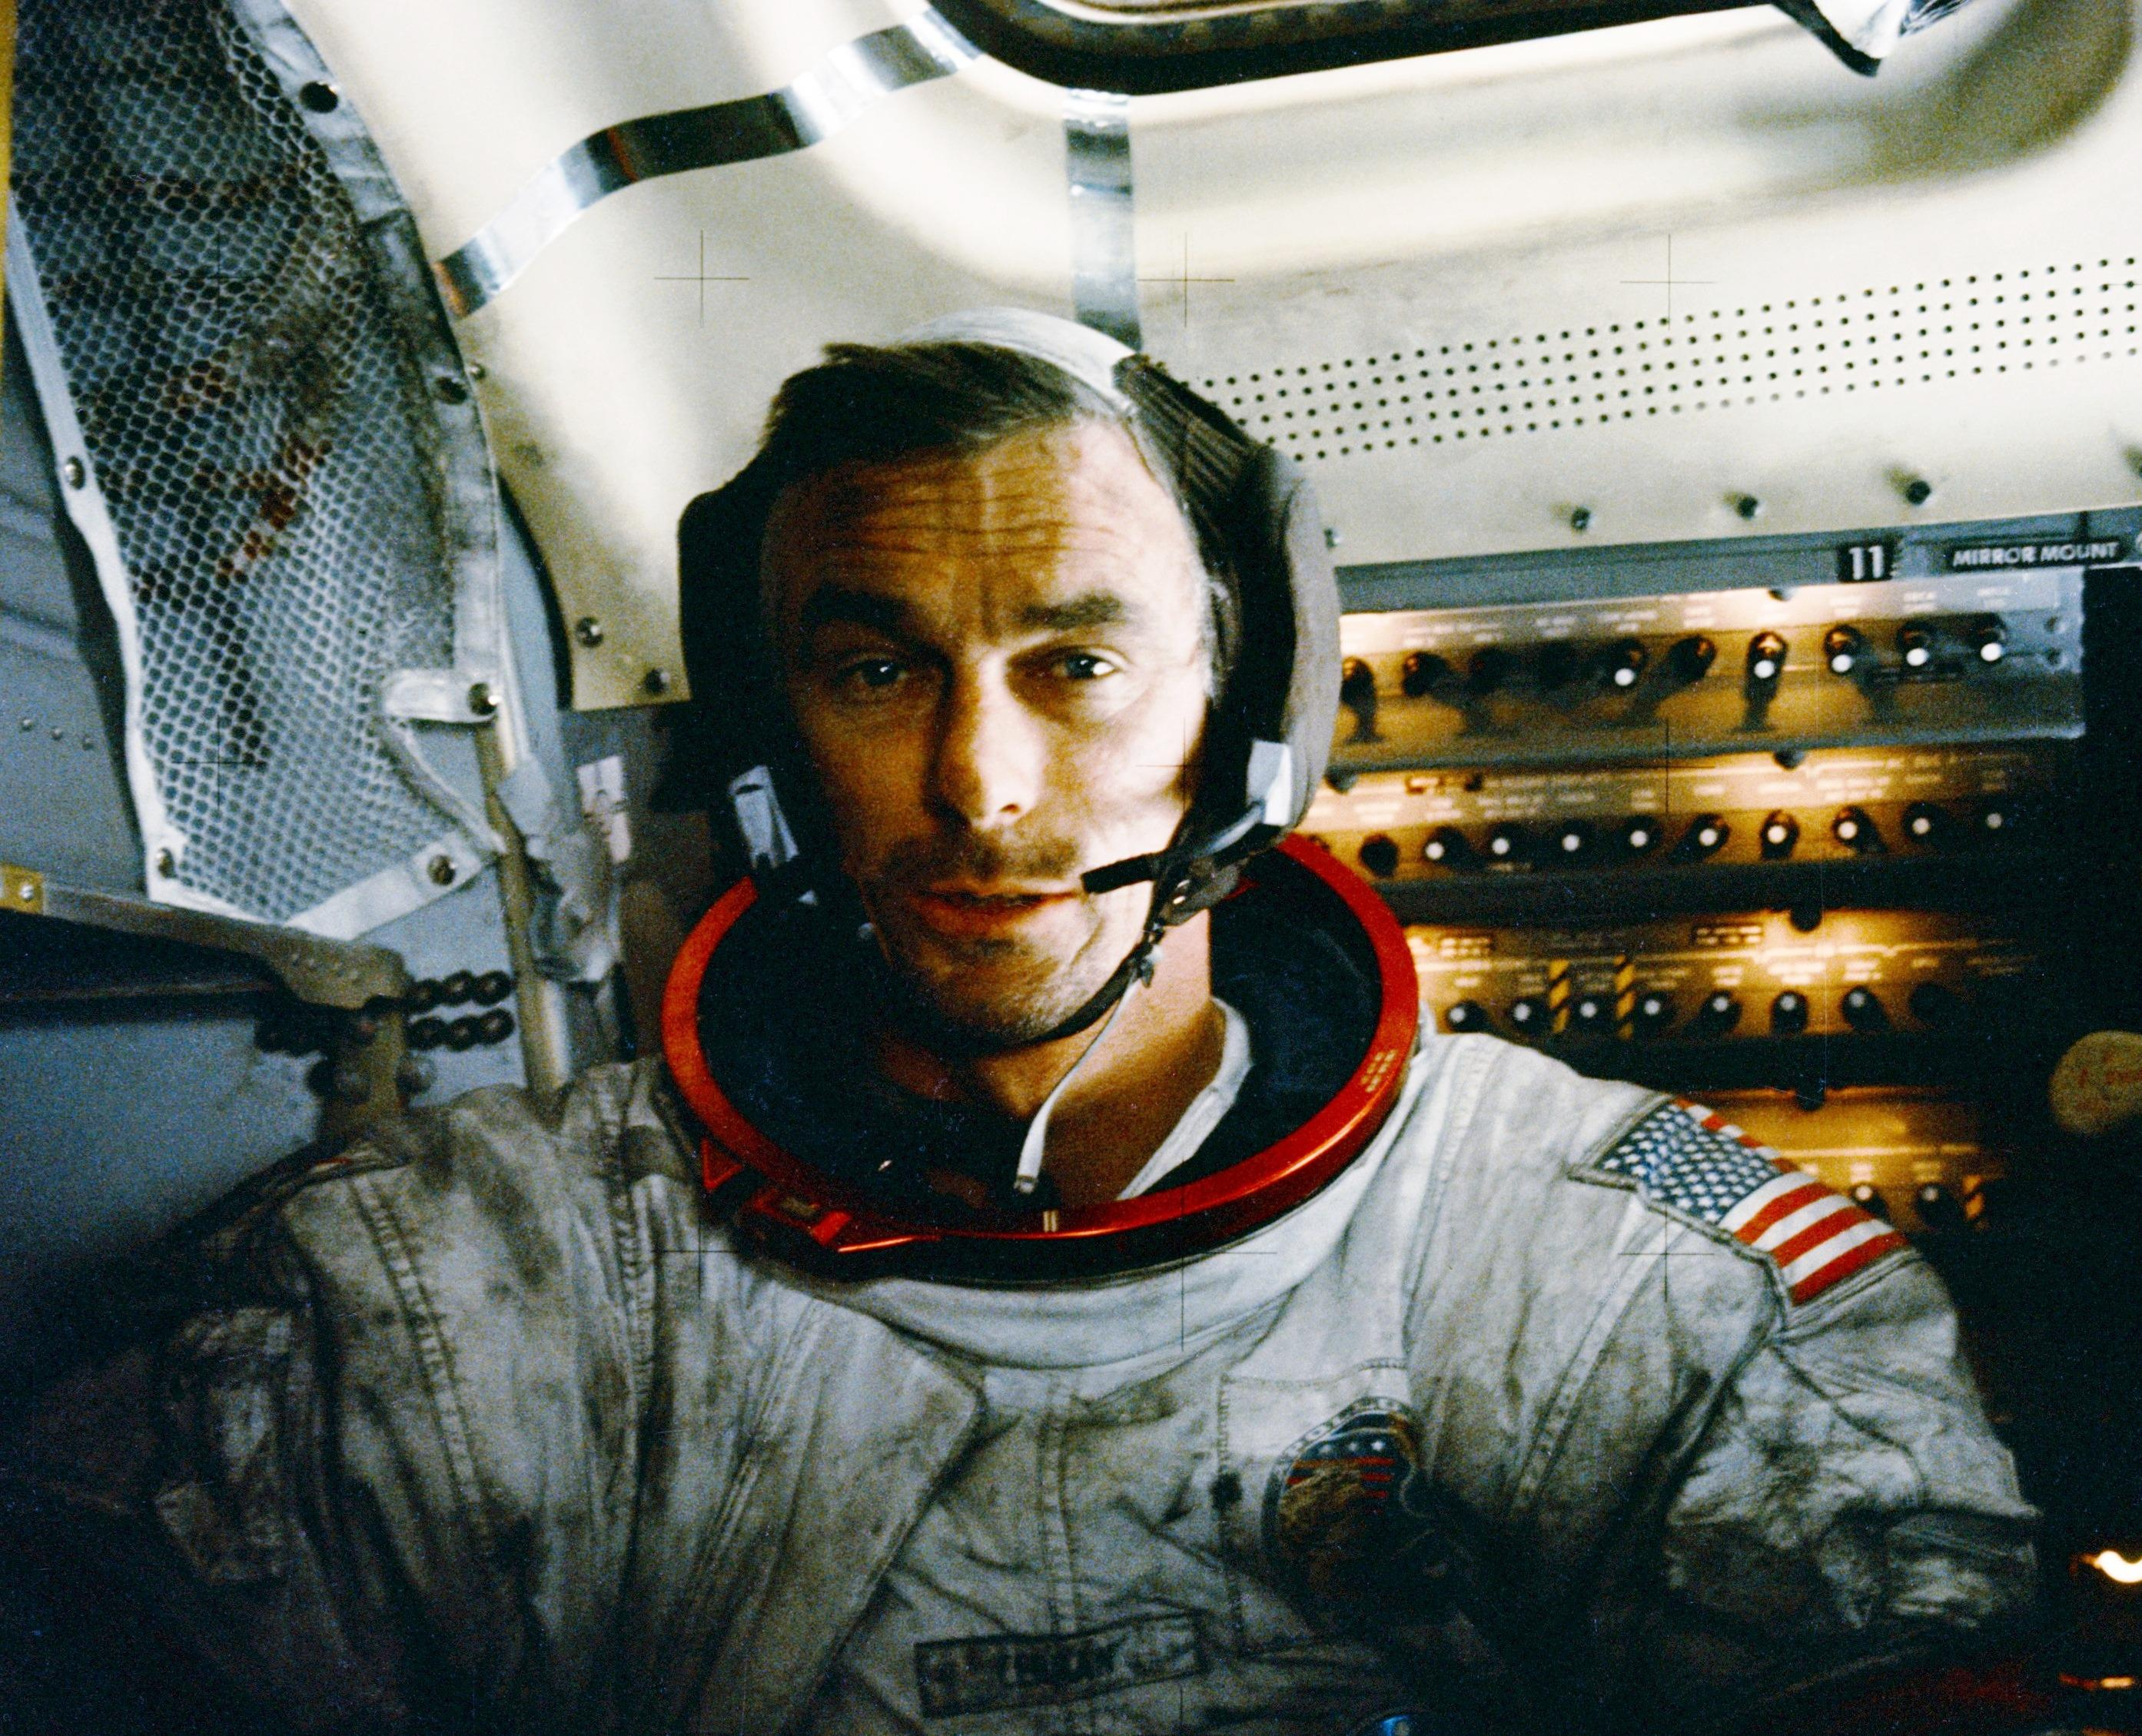 Last man to walk on the moon, Gene Cernan, leaves behind a dying wish